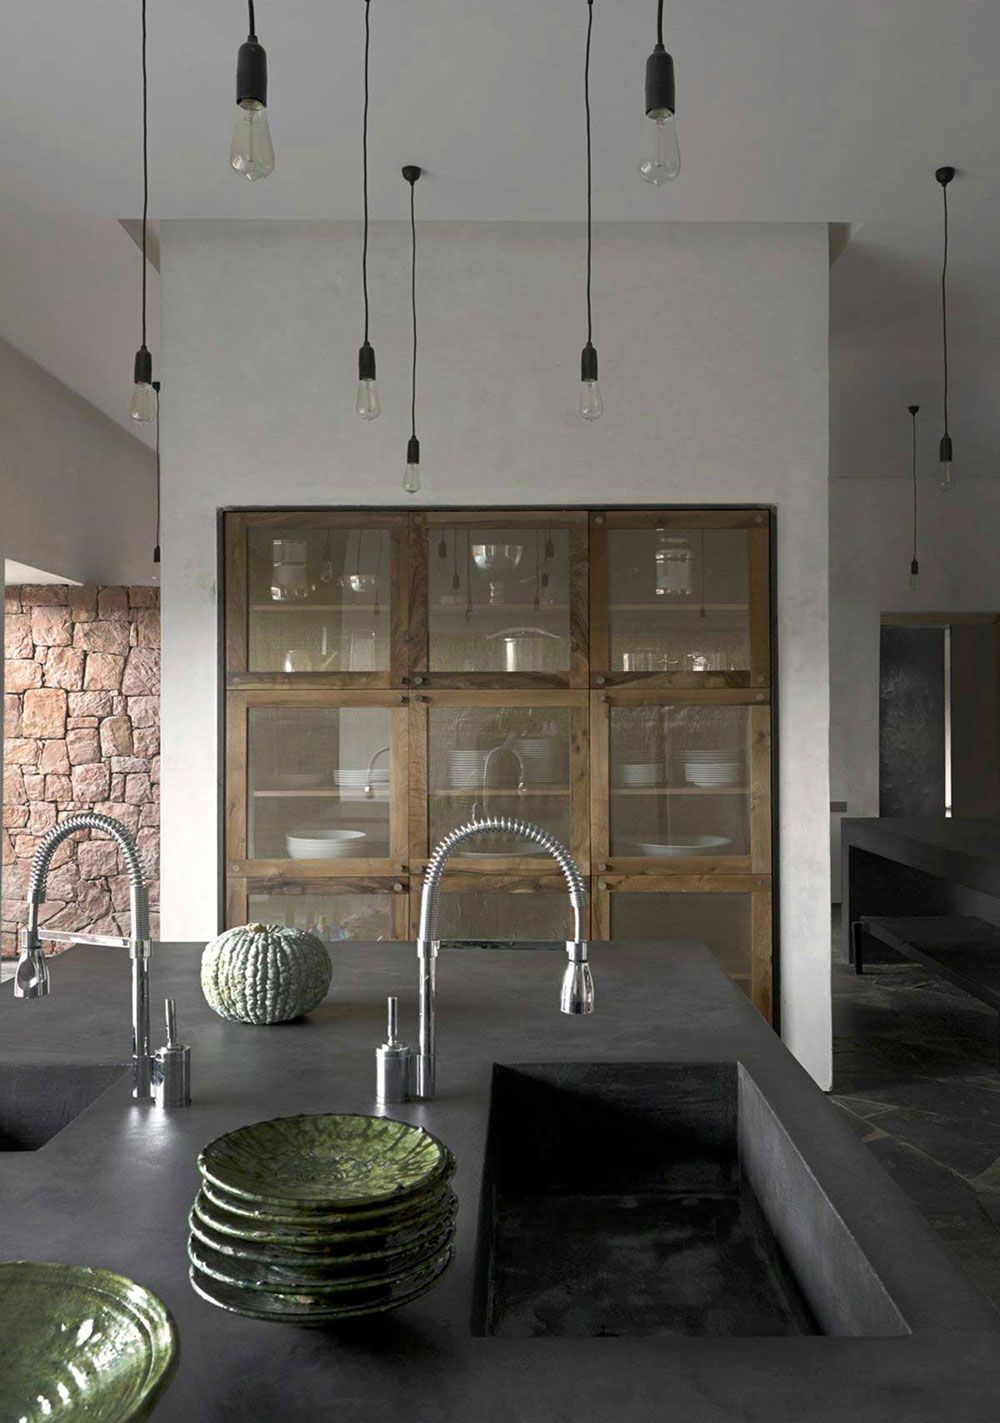 Moroccan Home Interior Industrial Minimal Inspiration Bathroom